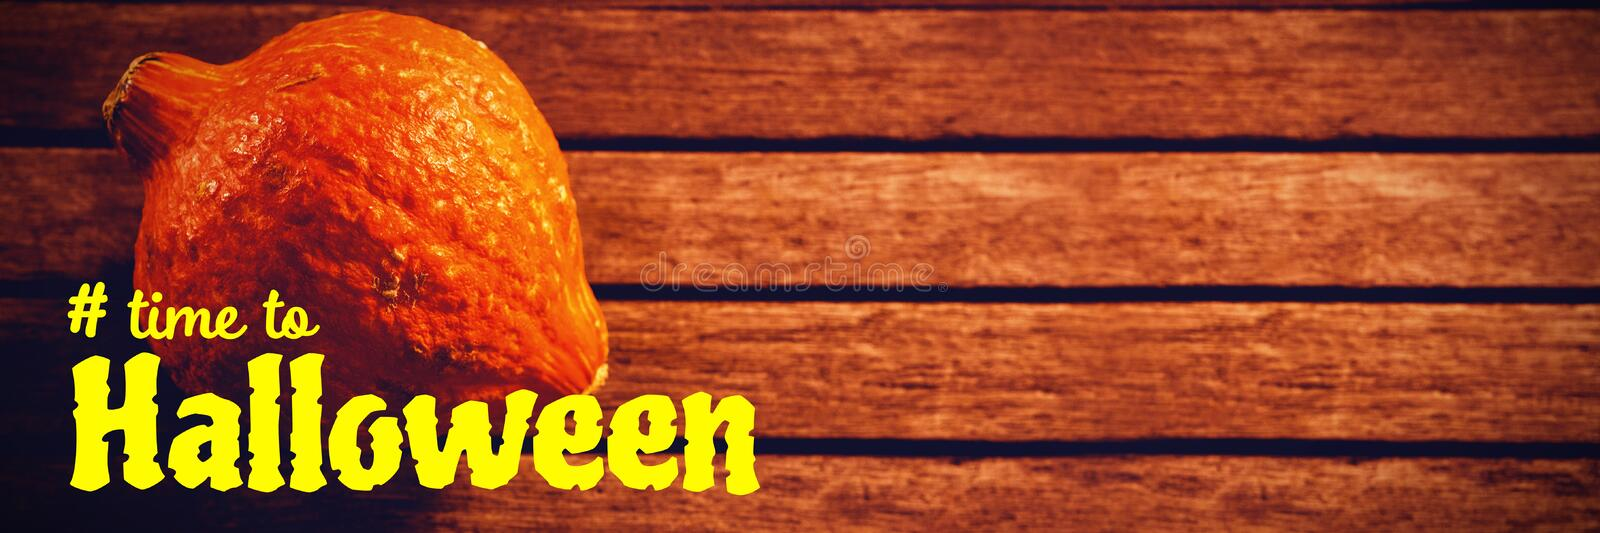 Composite image of digital image of time to halloween text. Digital image of time to Halloween text against squash on wooden table during halloween royalty free stock images